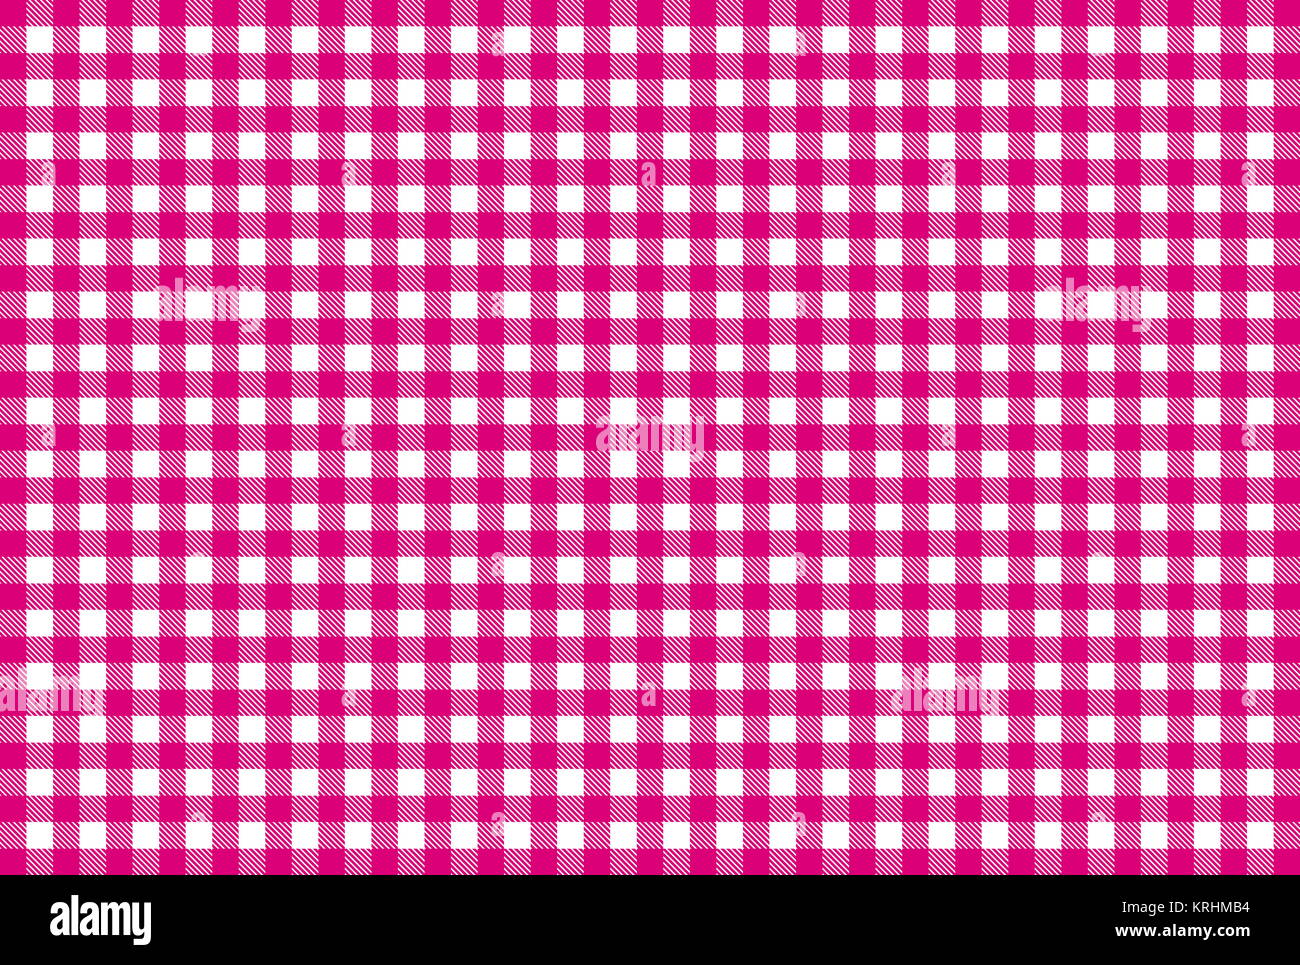 Tablecloths Checkered Pattern Pink White